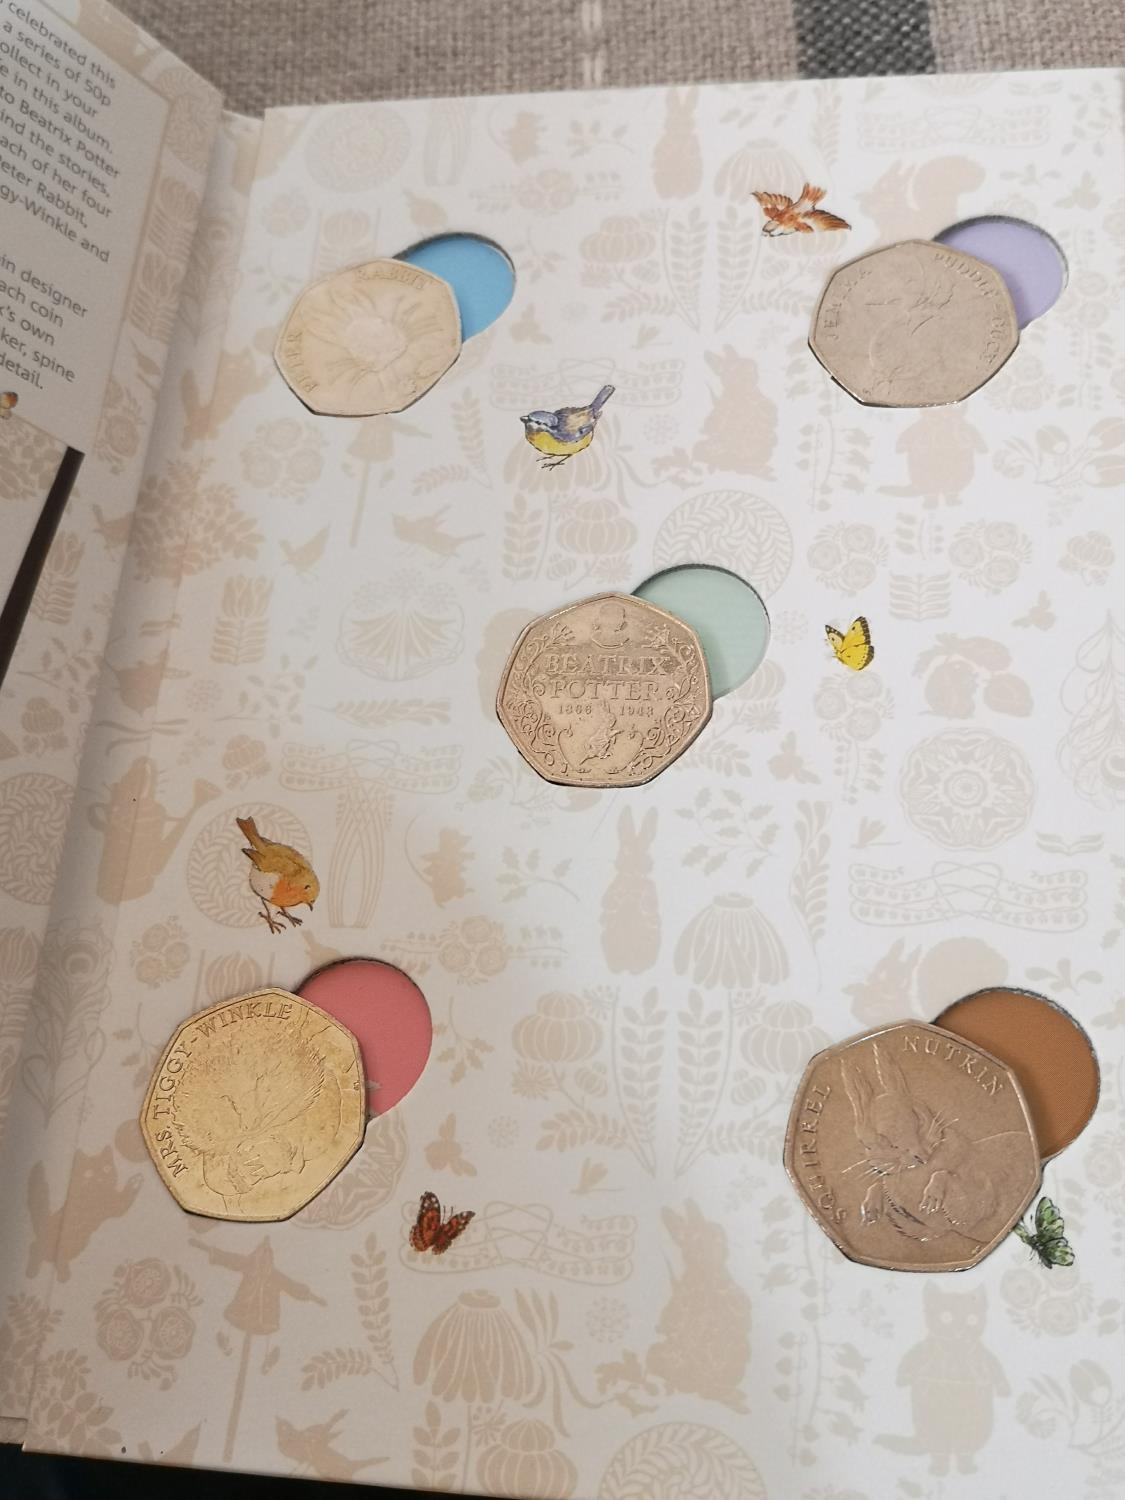 A COLLECTION OF 'THE ROYAL MINT' TREASURY FOR LIFE 50 PENCE COINS. TO INCLUDE TWO SEALED - Image 2 of 3